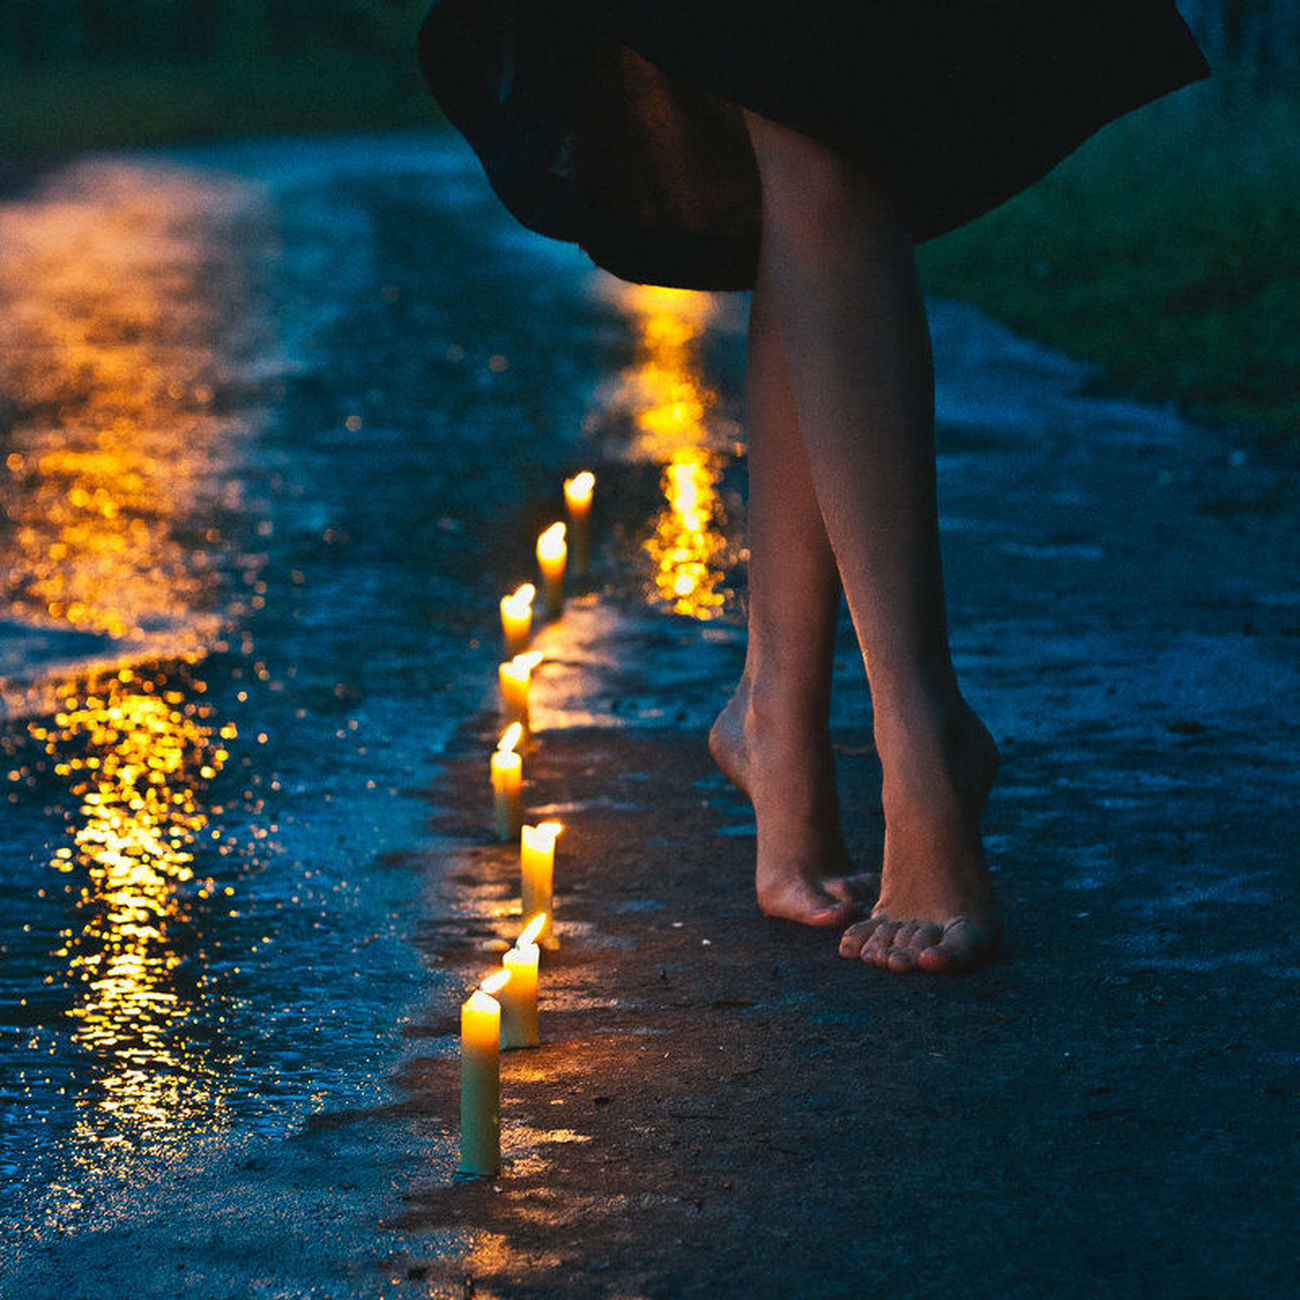 Adult Child Close-up Diwali Human Body Part Human Hand Human Leg Illuminated Low Section Night One Person Outdoors People Real People Standing